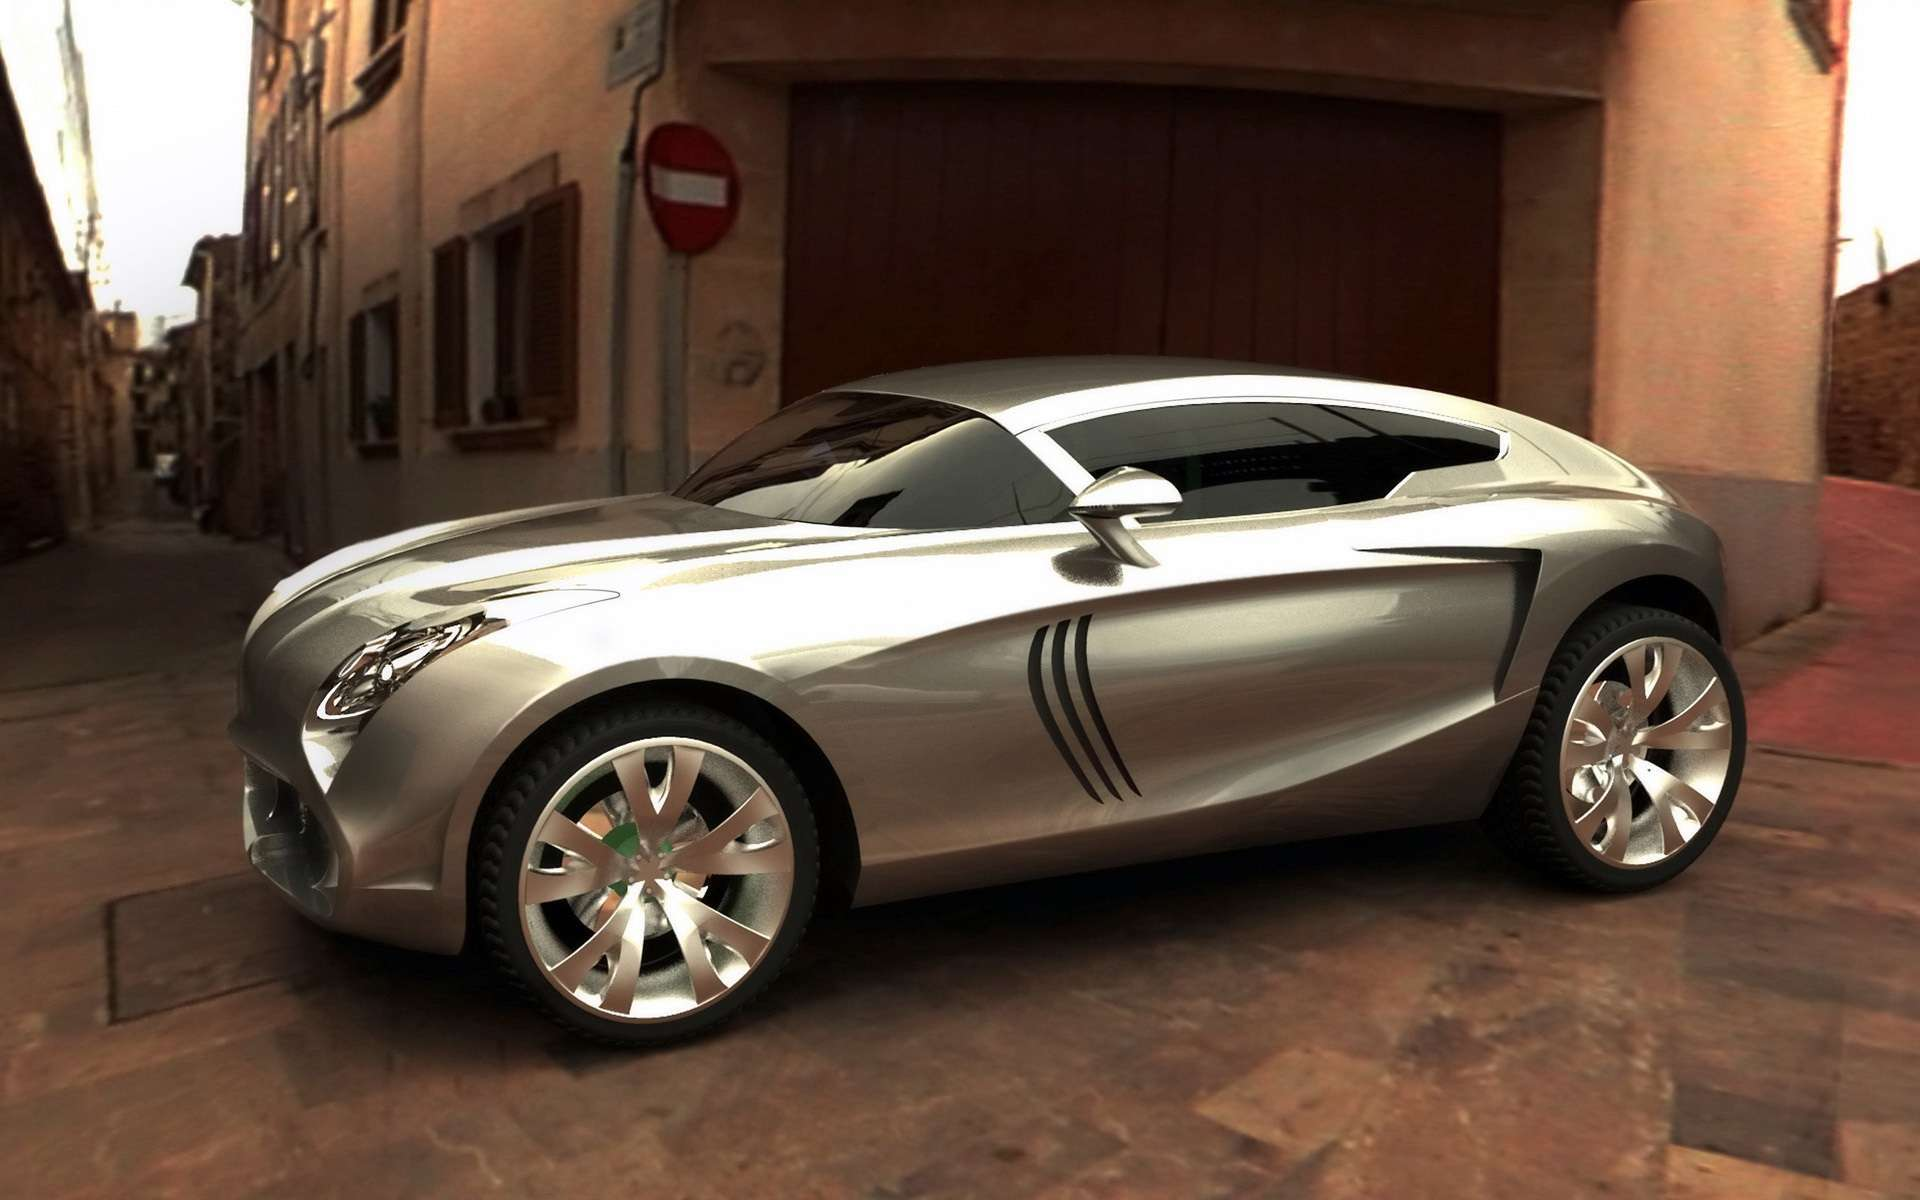 Maserati Kuba Concept Wallpaper HD Widescreen Desktop HD Wallpapers 1920x1200